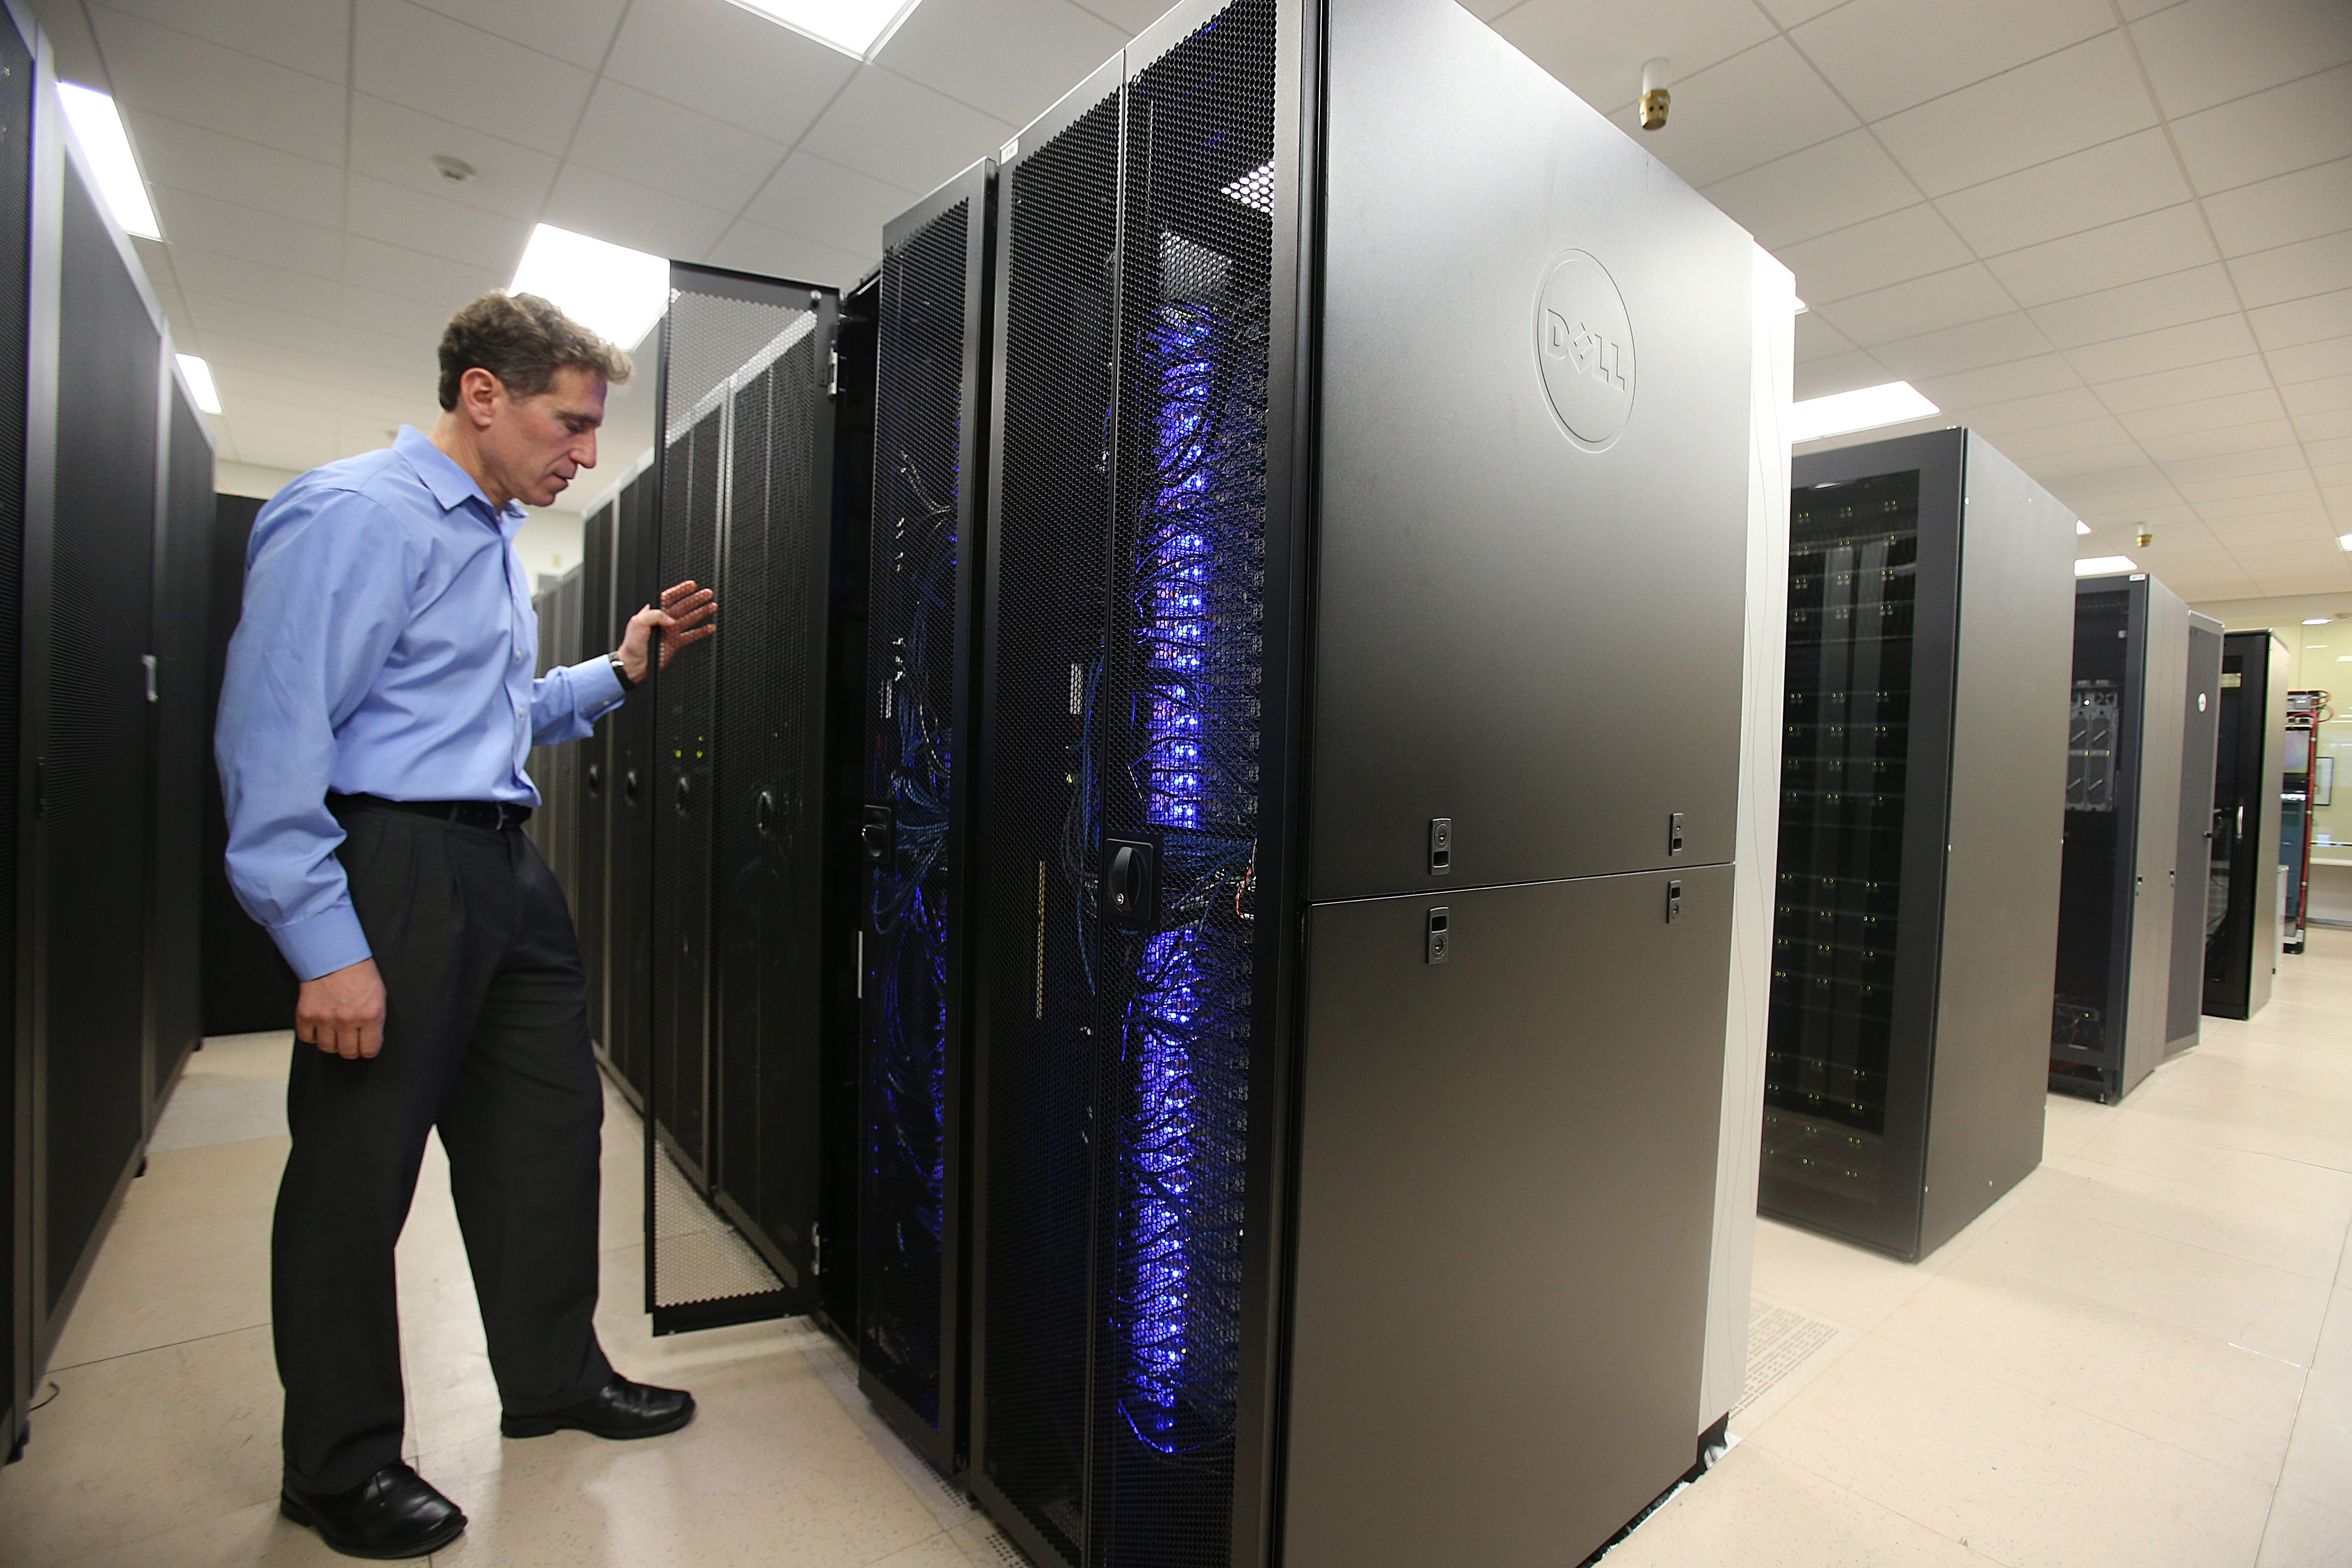 Massive computing horsepower is required for genome mapping, said Tom Furlani, director of the Center for Computational Research, located on the Buffalo Niagara Medical Campus.